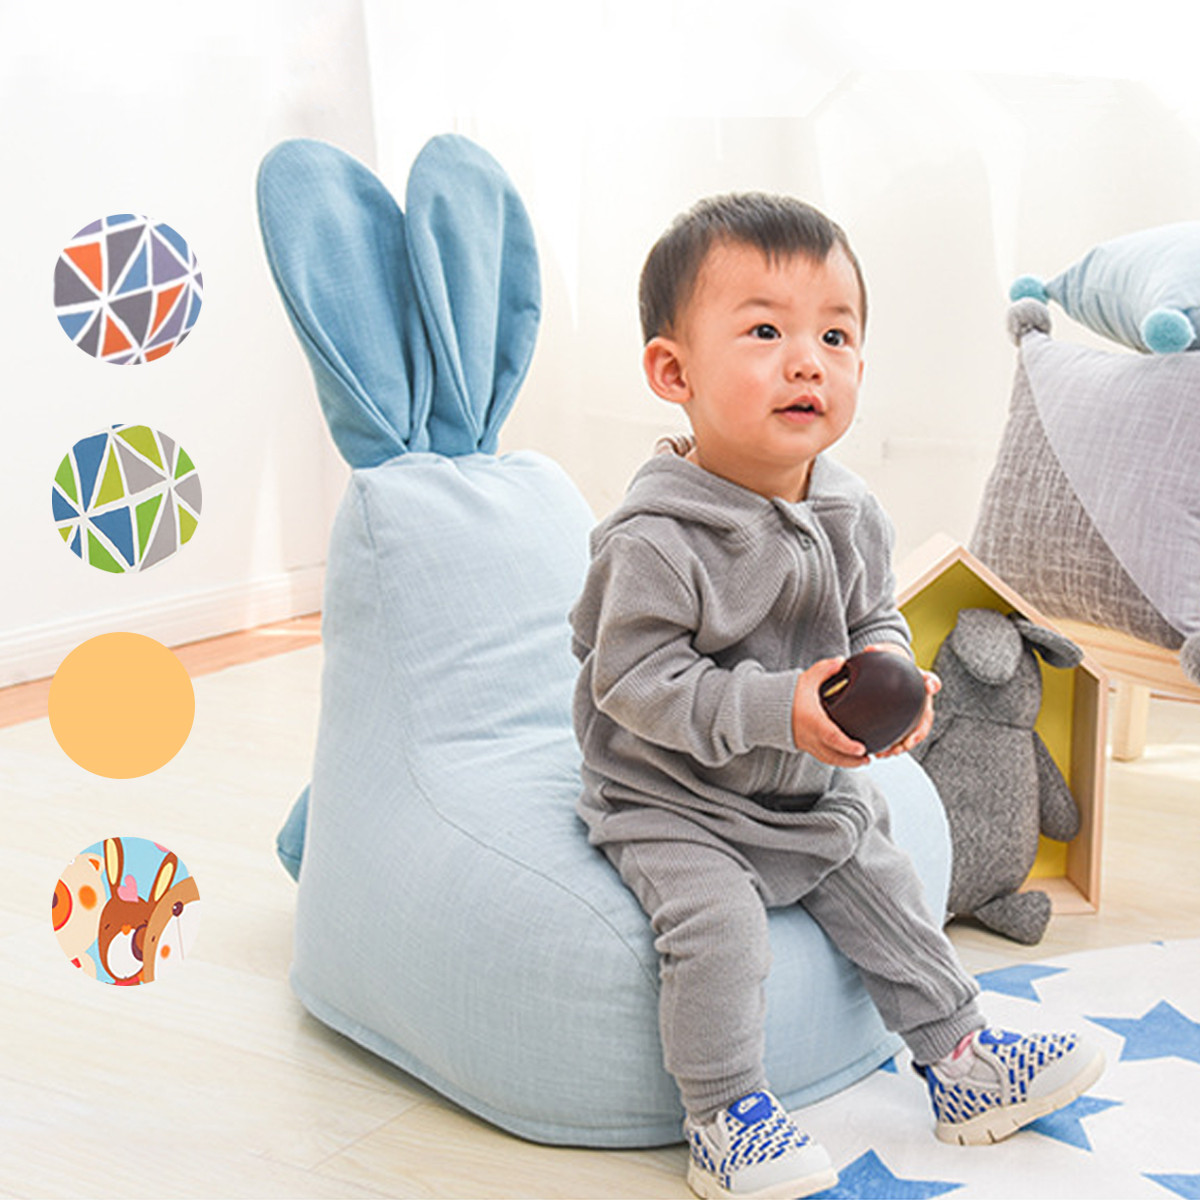 Nordic Baby Bean Bag Chair With Filler Pouf Kids Sofa Baby Seat Pillow Portable Chairs for Baby Infant Room Decor Child's toys